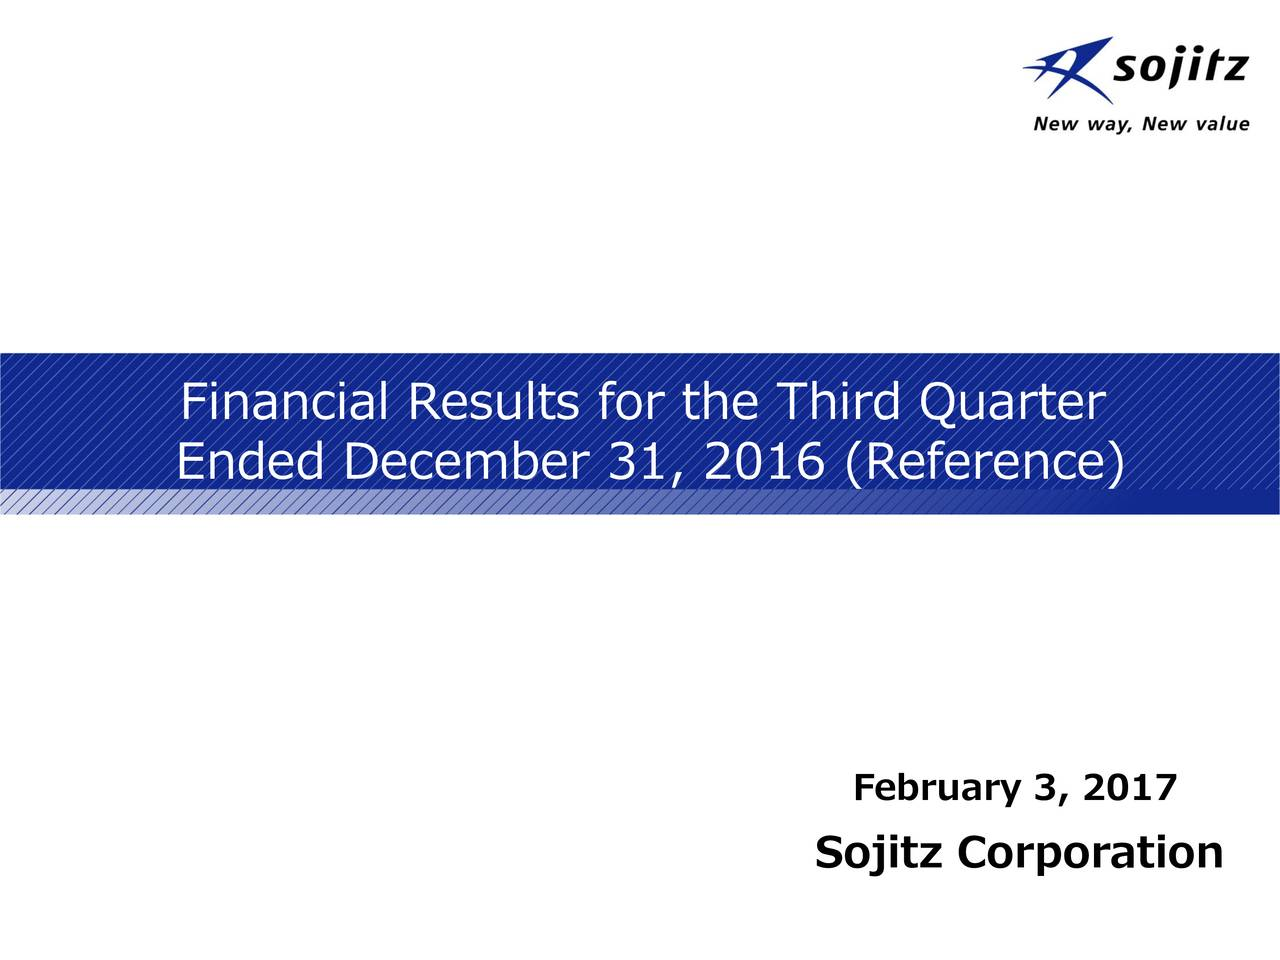 Ended December 31, 2016 (Reference) February 3, 2017 Sojitz Corporation